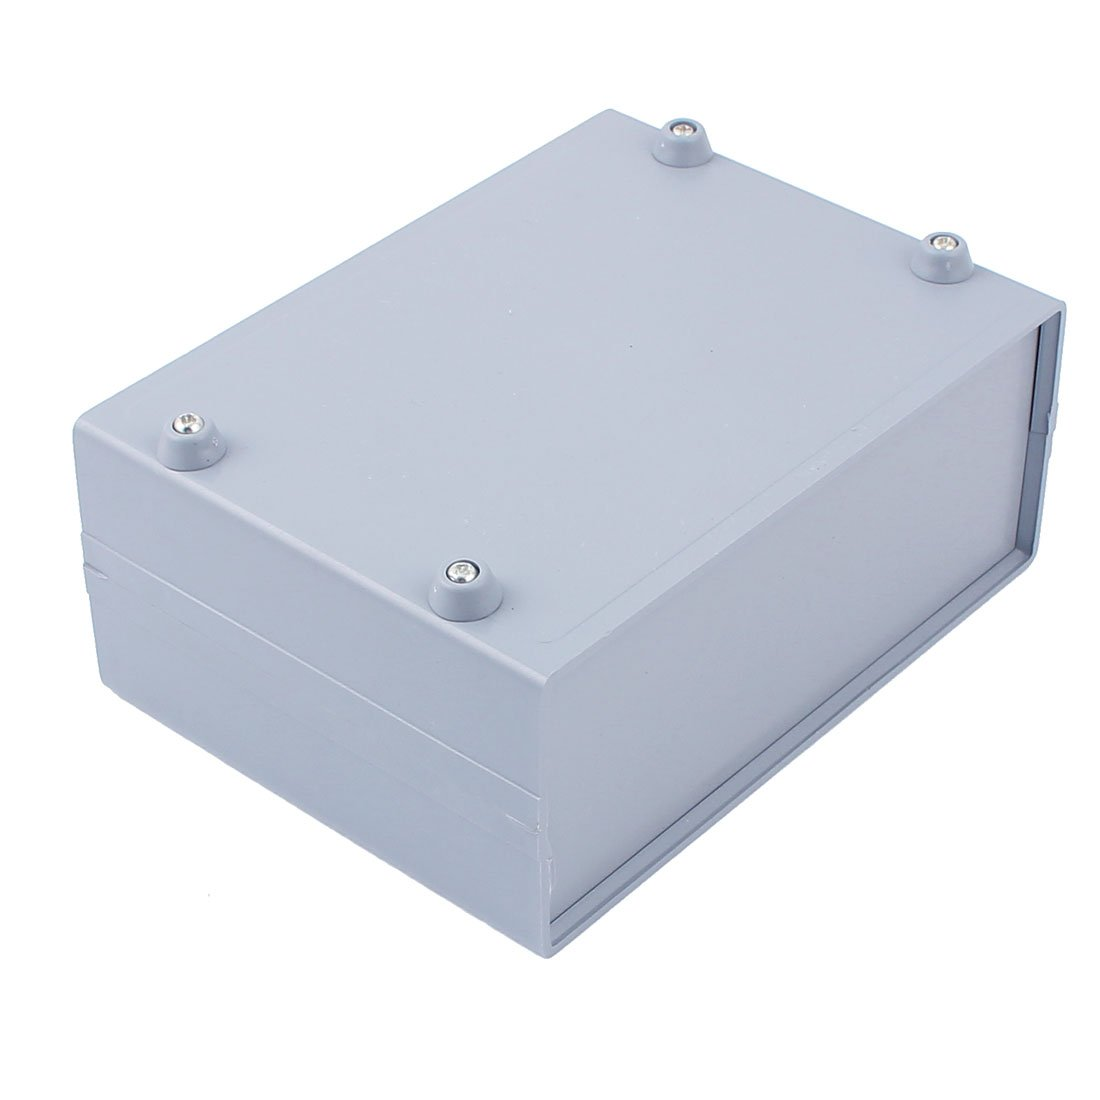 uxcell 165mmx120mmx68mm Gray Enclosure Case DIY Electronic Wiring Project Box